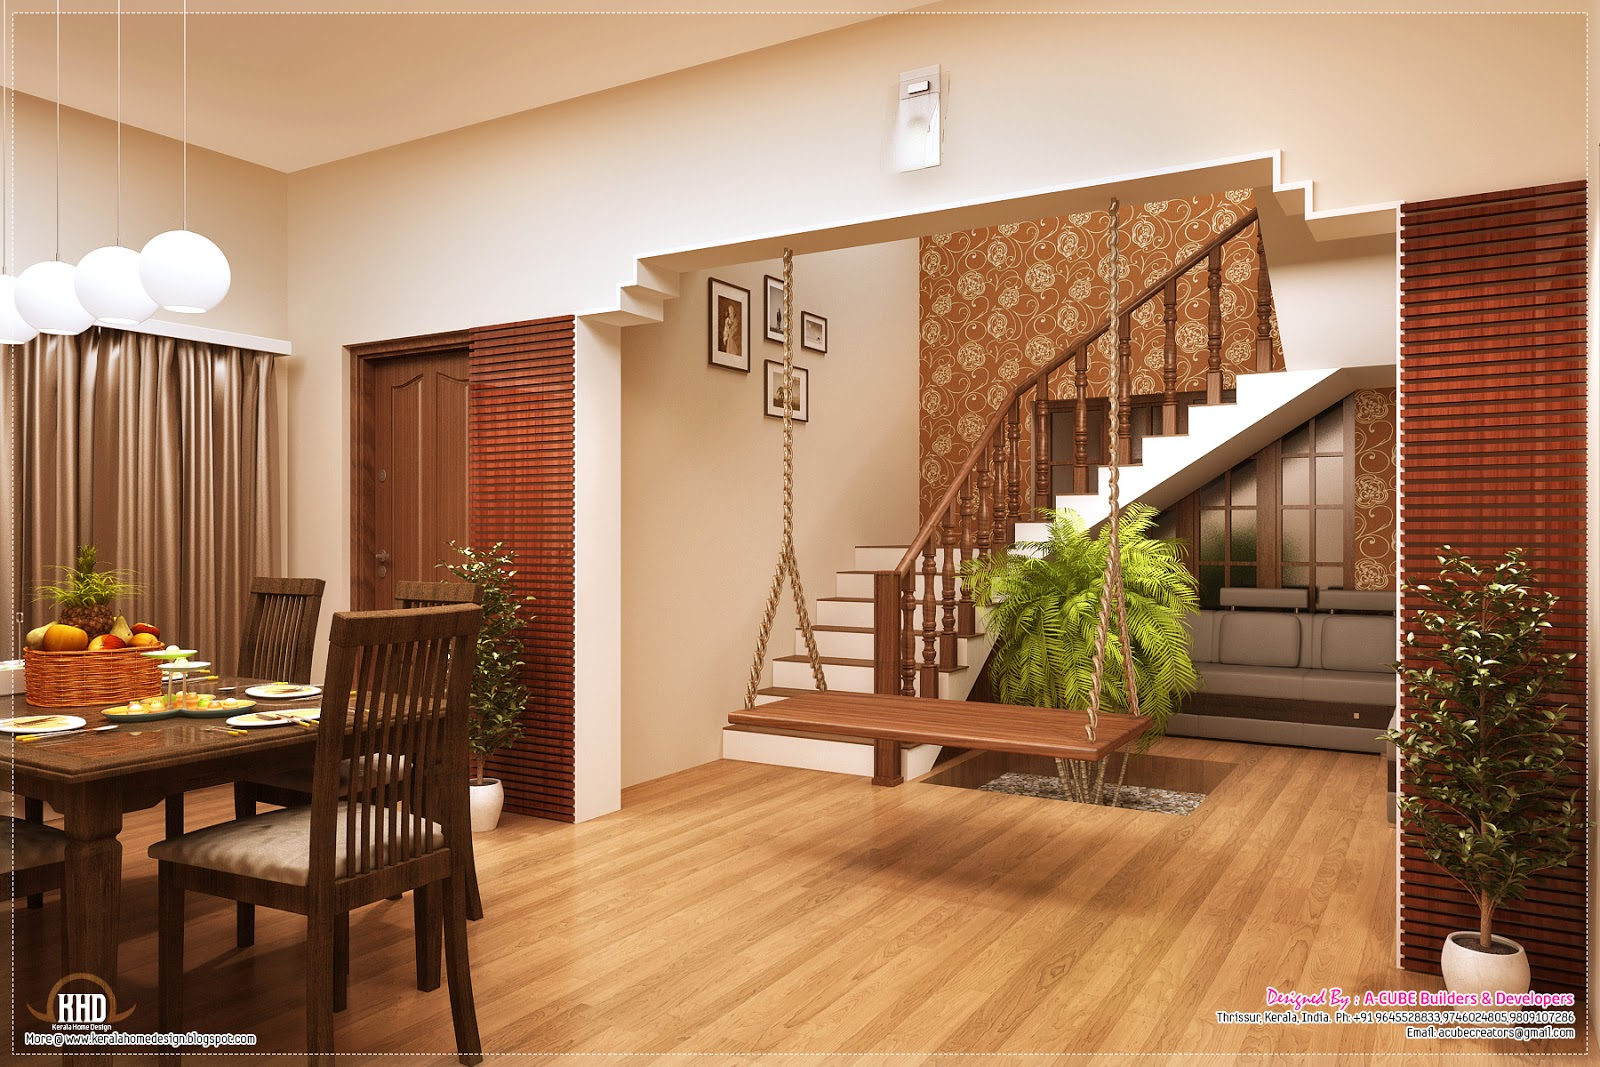 Awesome interior decoration ideas house design plans